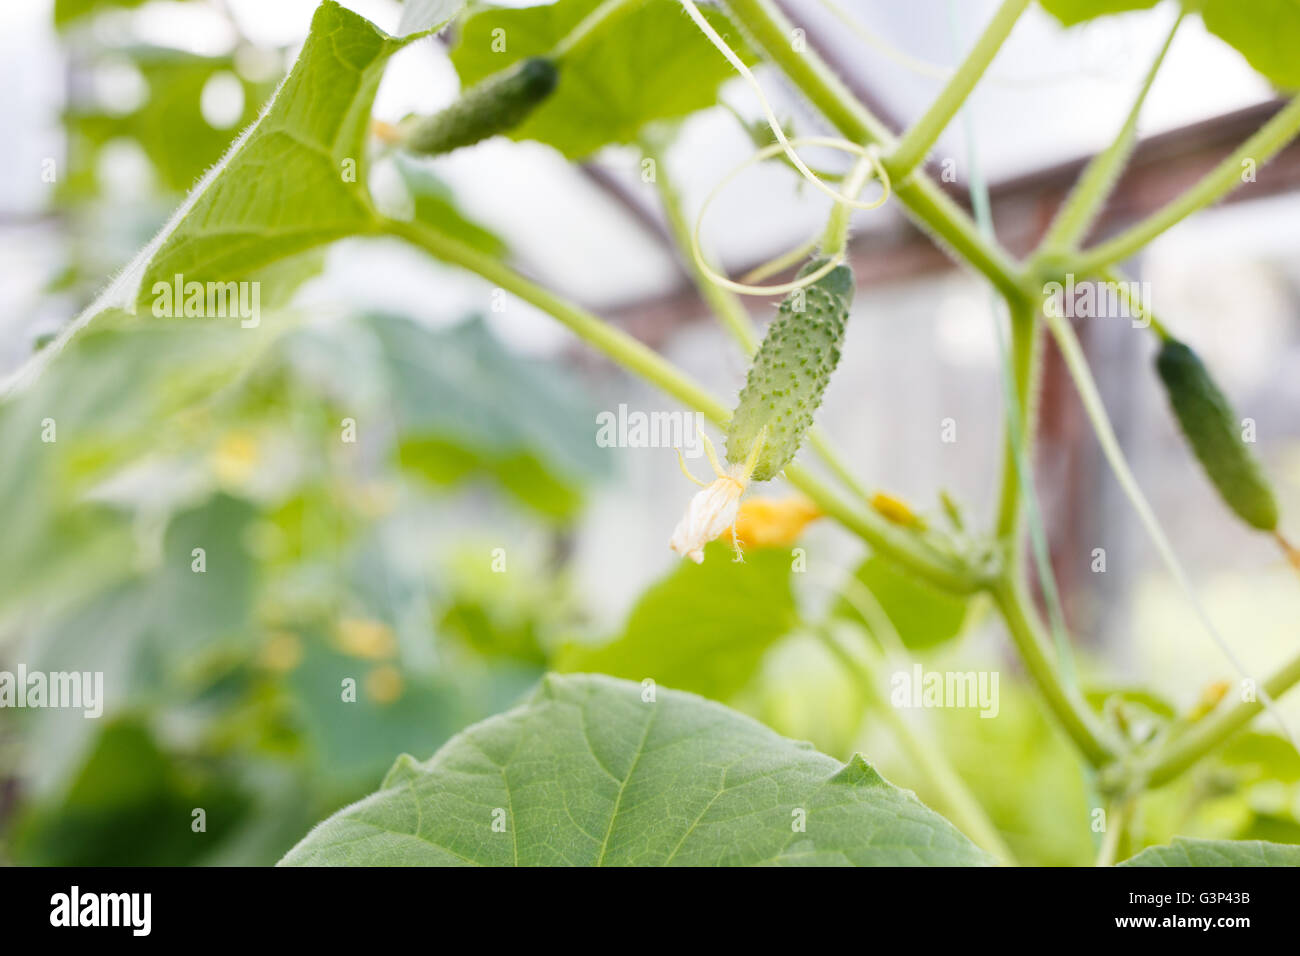 Growing young cucumber in a glasshouse. Agricultural and gardening background - Stock Image